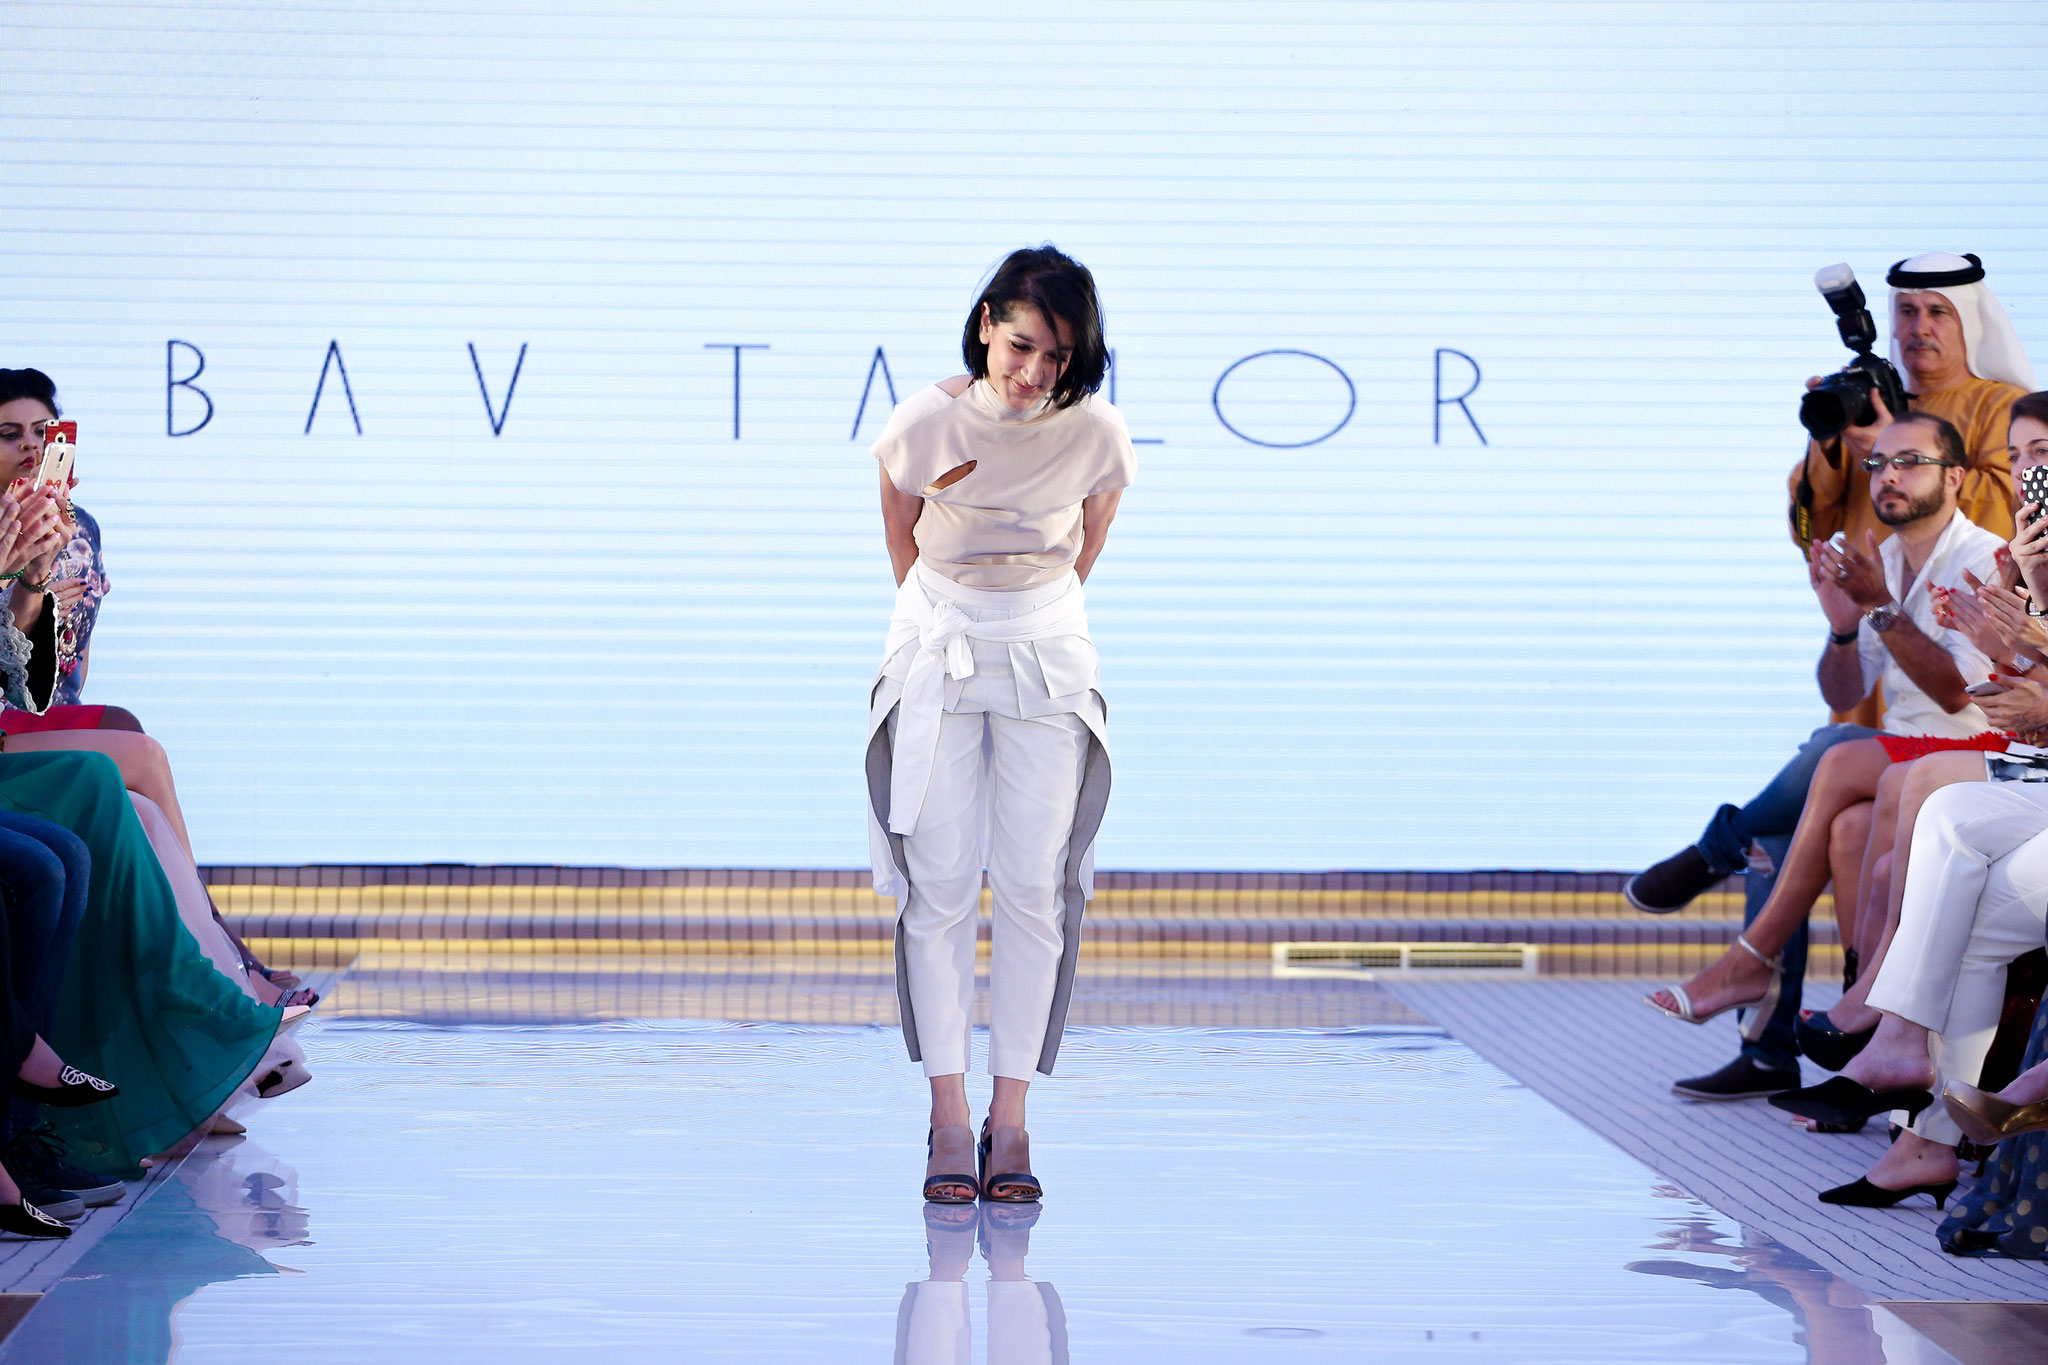 Bav Tailor bows to the applause. @bavtailor